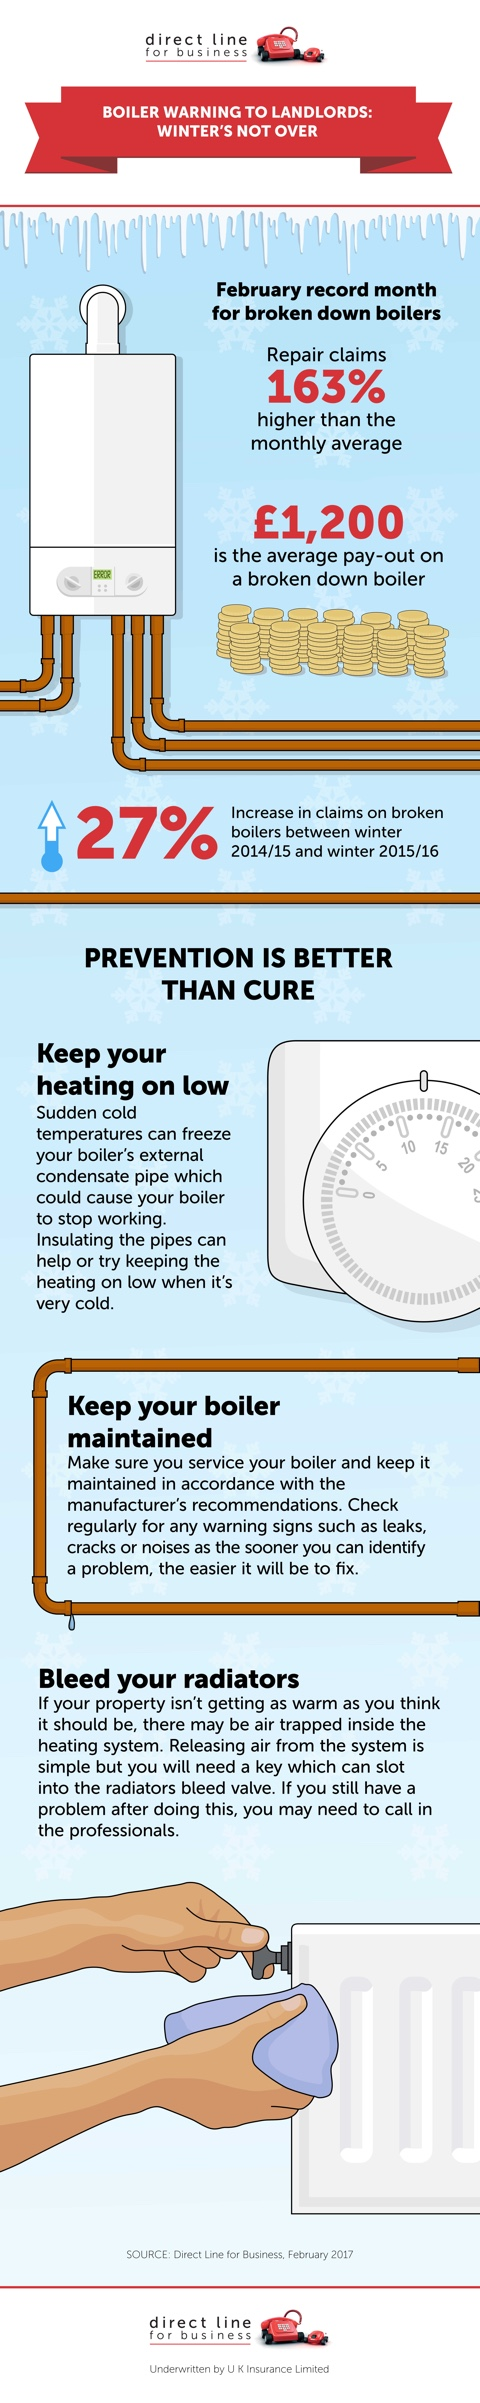 Boiler repair costs increase year on year. Find out more here.